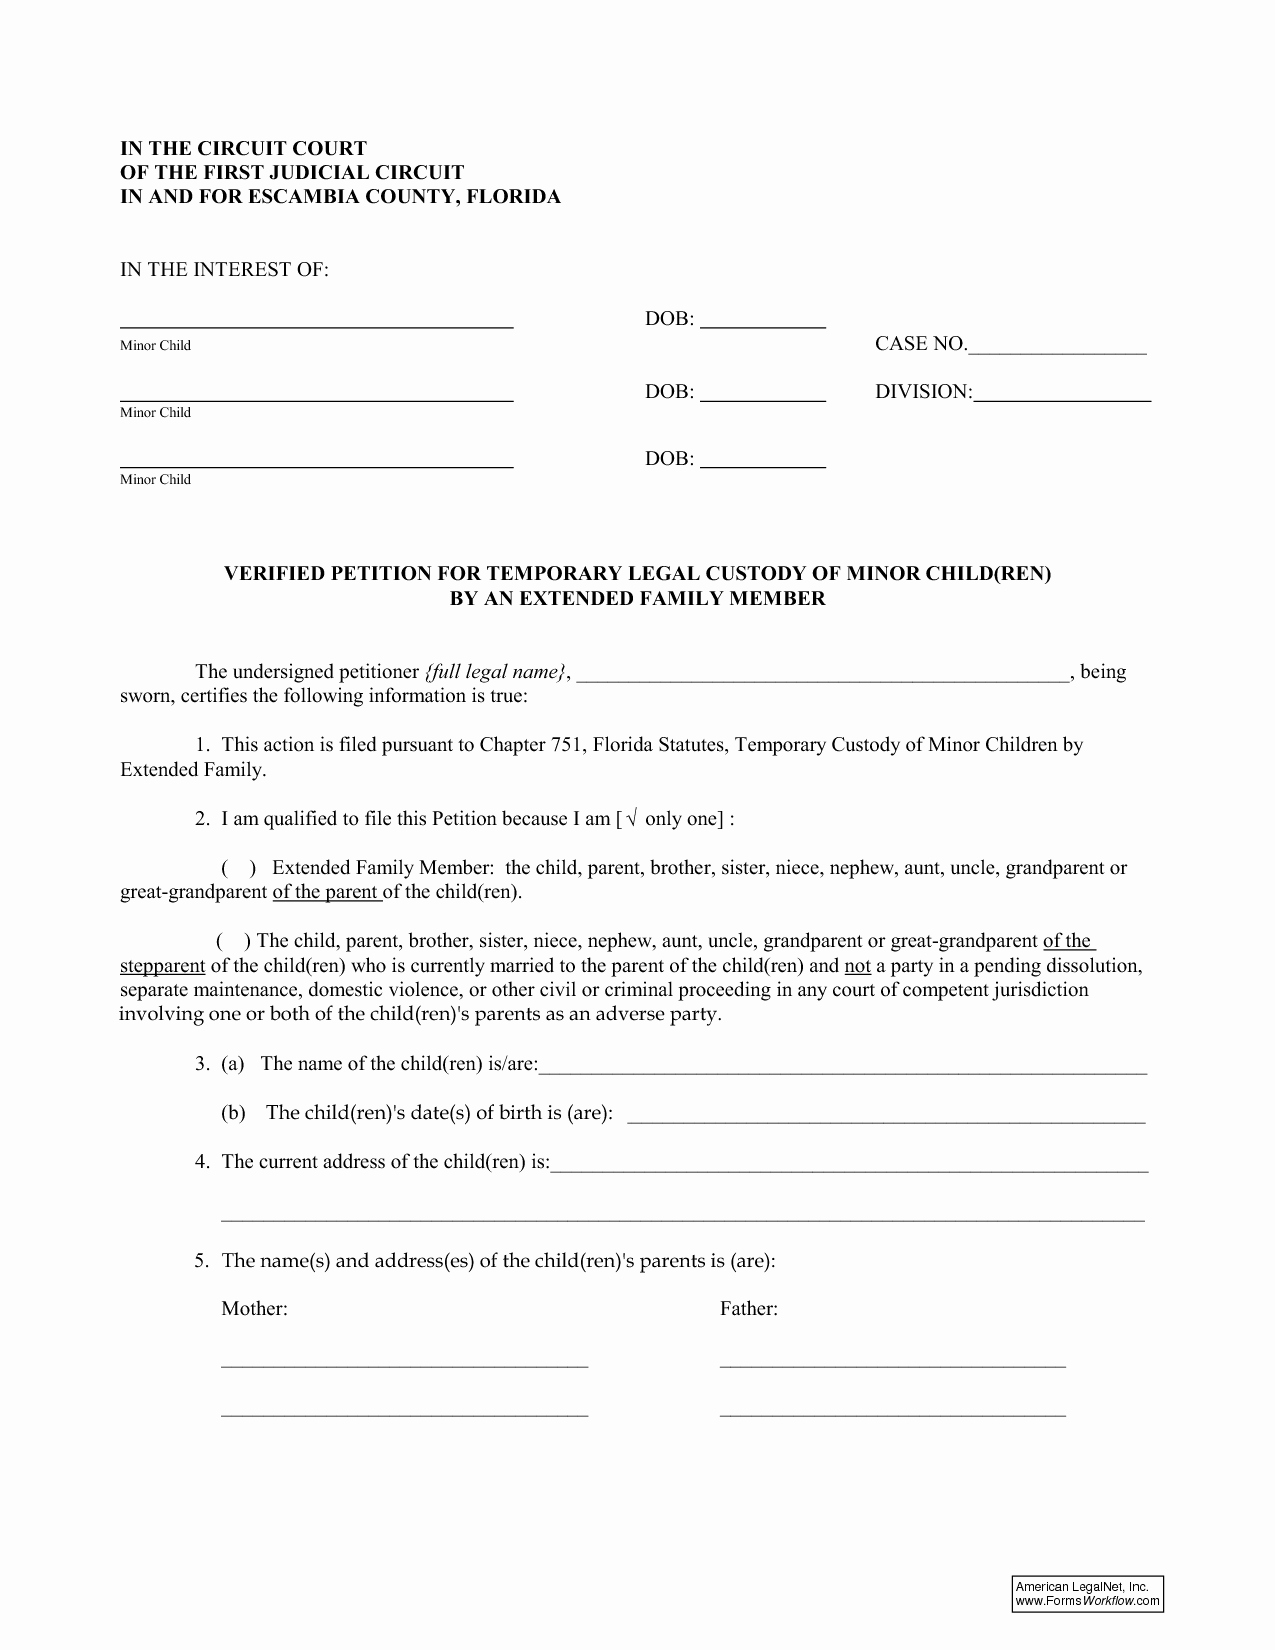 Free Temporary Guardianship form Inspirational Best S Of Temporary Guardianship form Florida Free